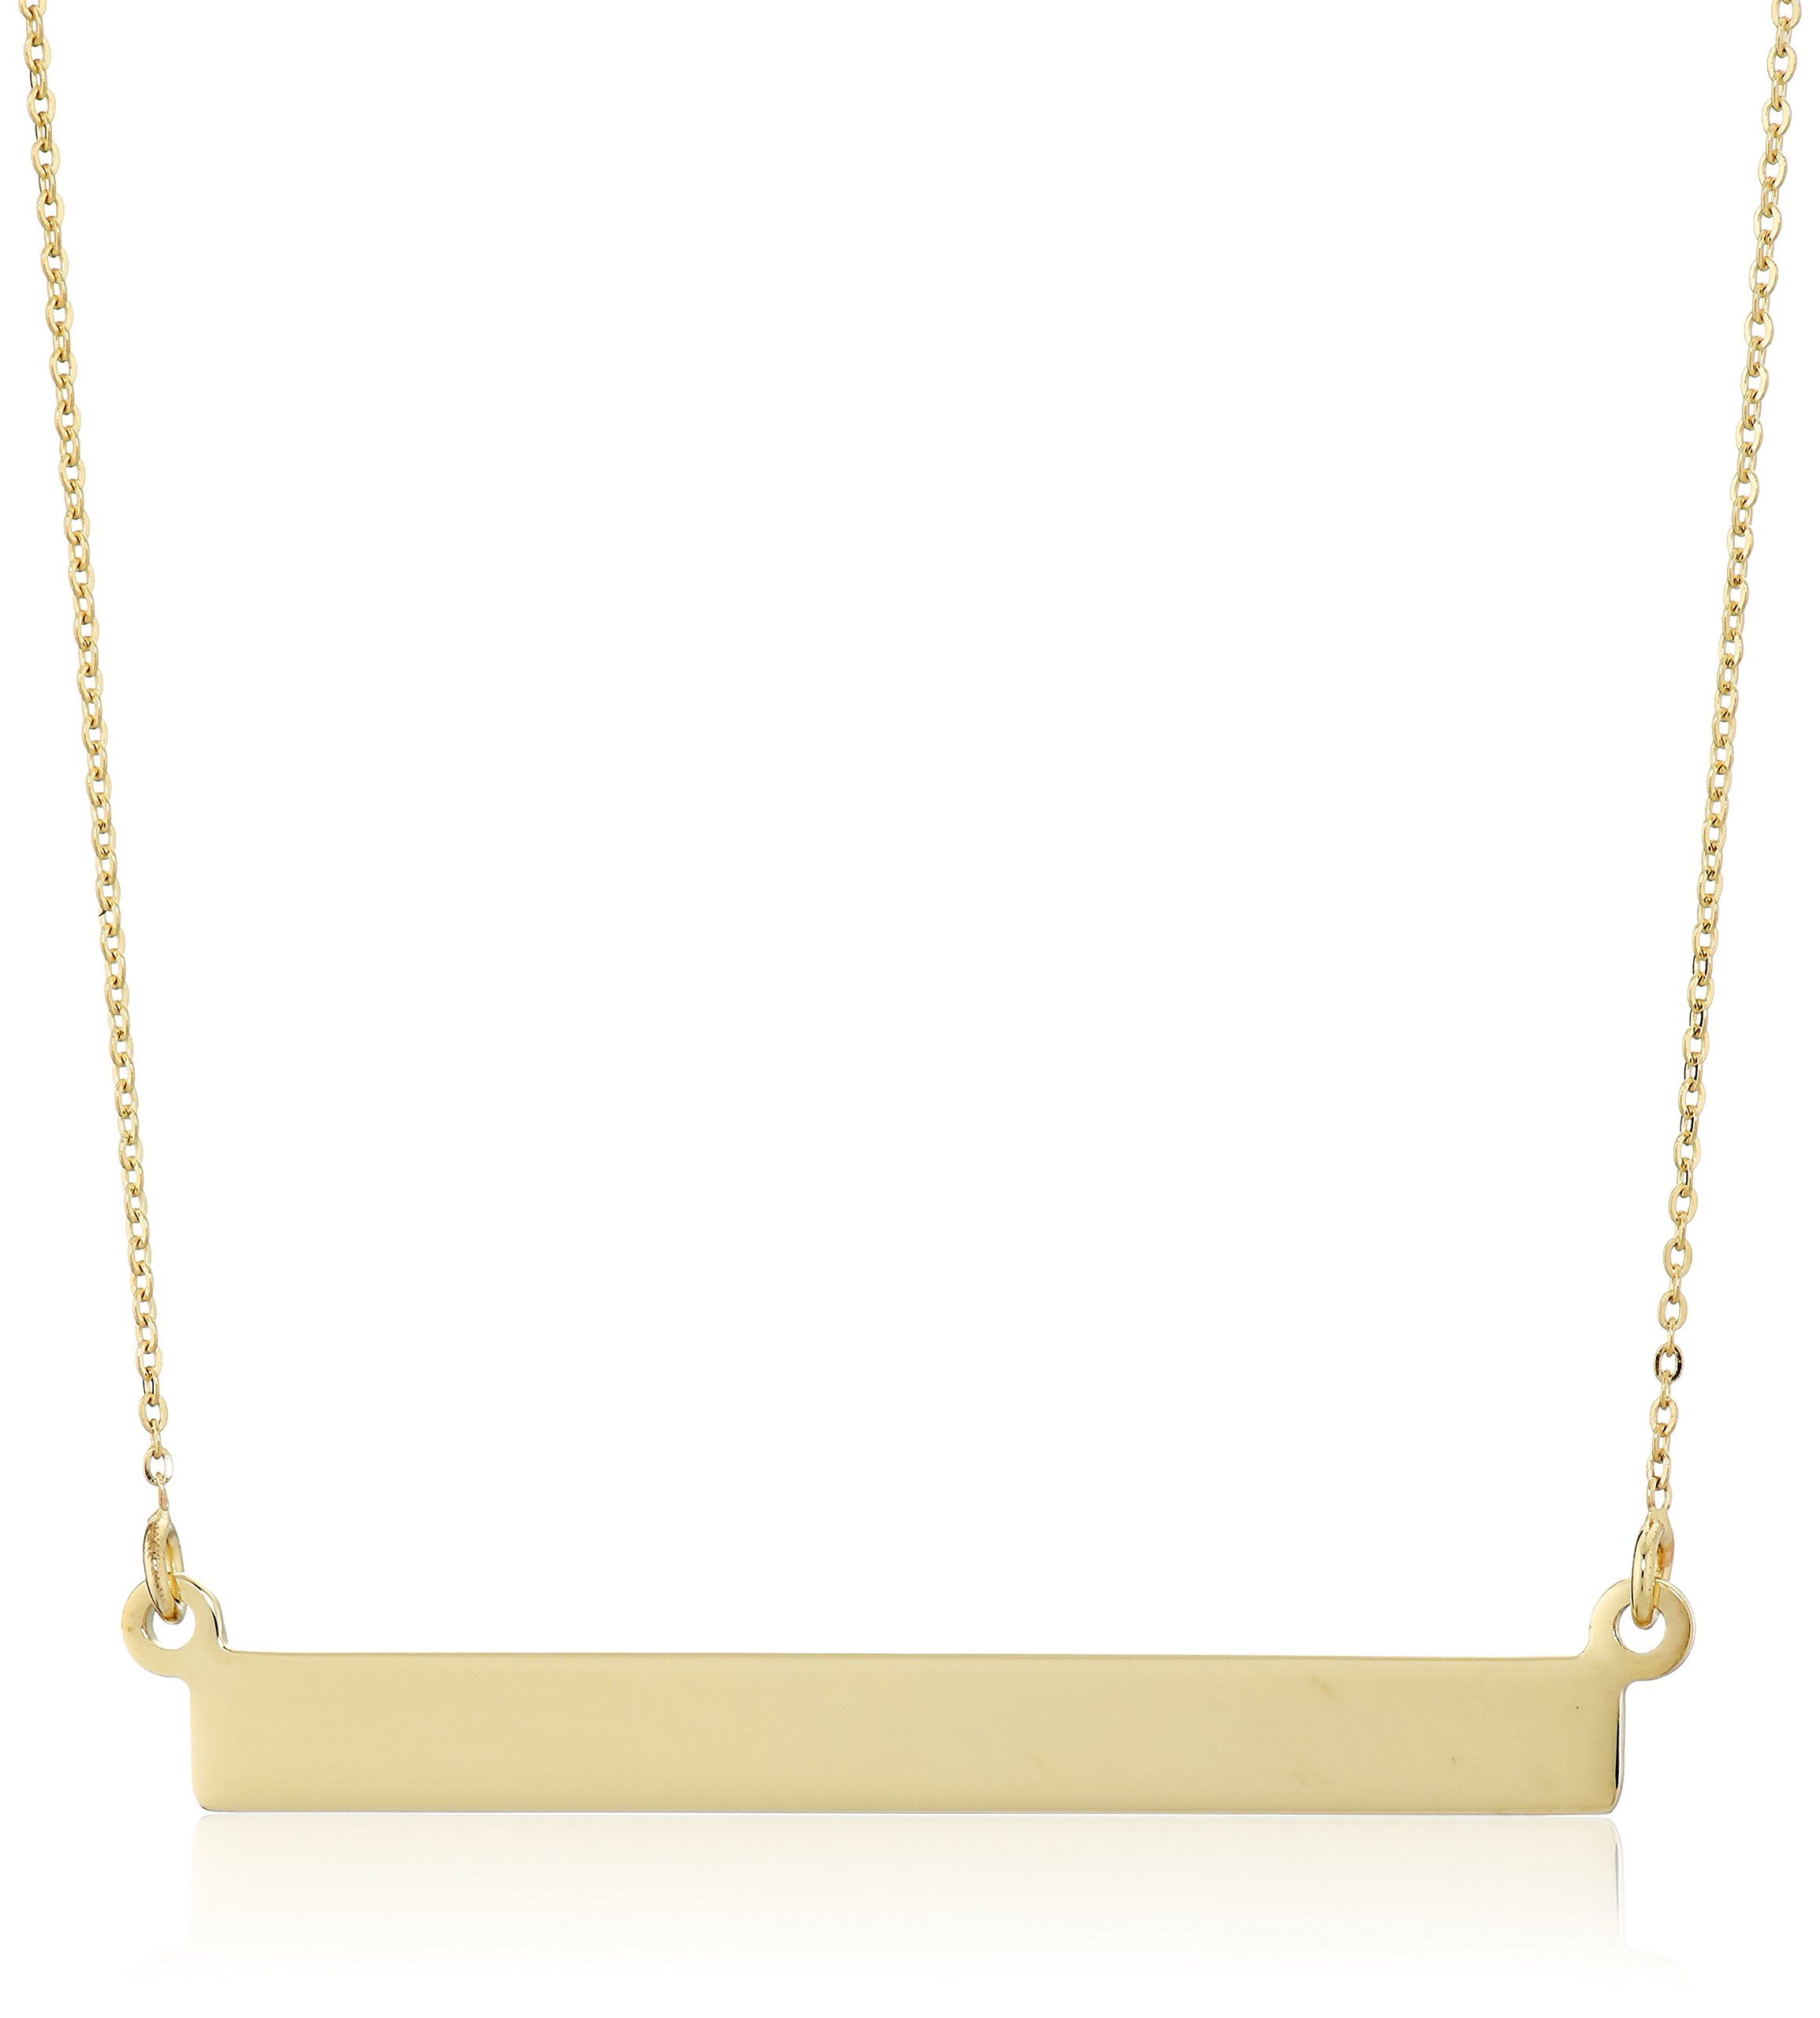 14K Yellow Gold Flat Bar Rolo- Chain Necklace, 18''